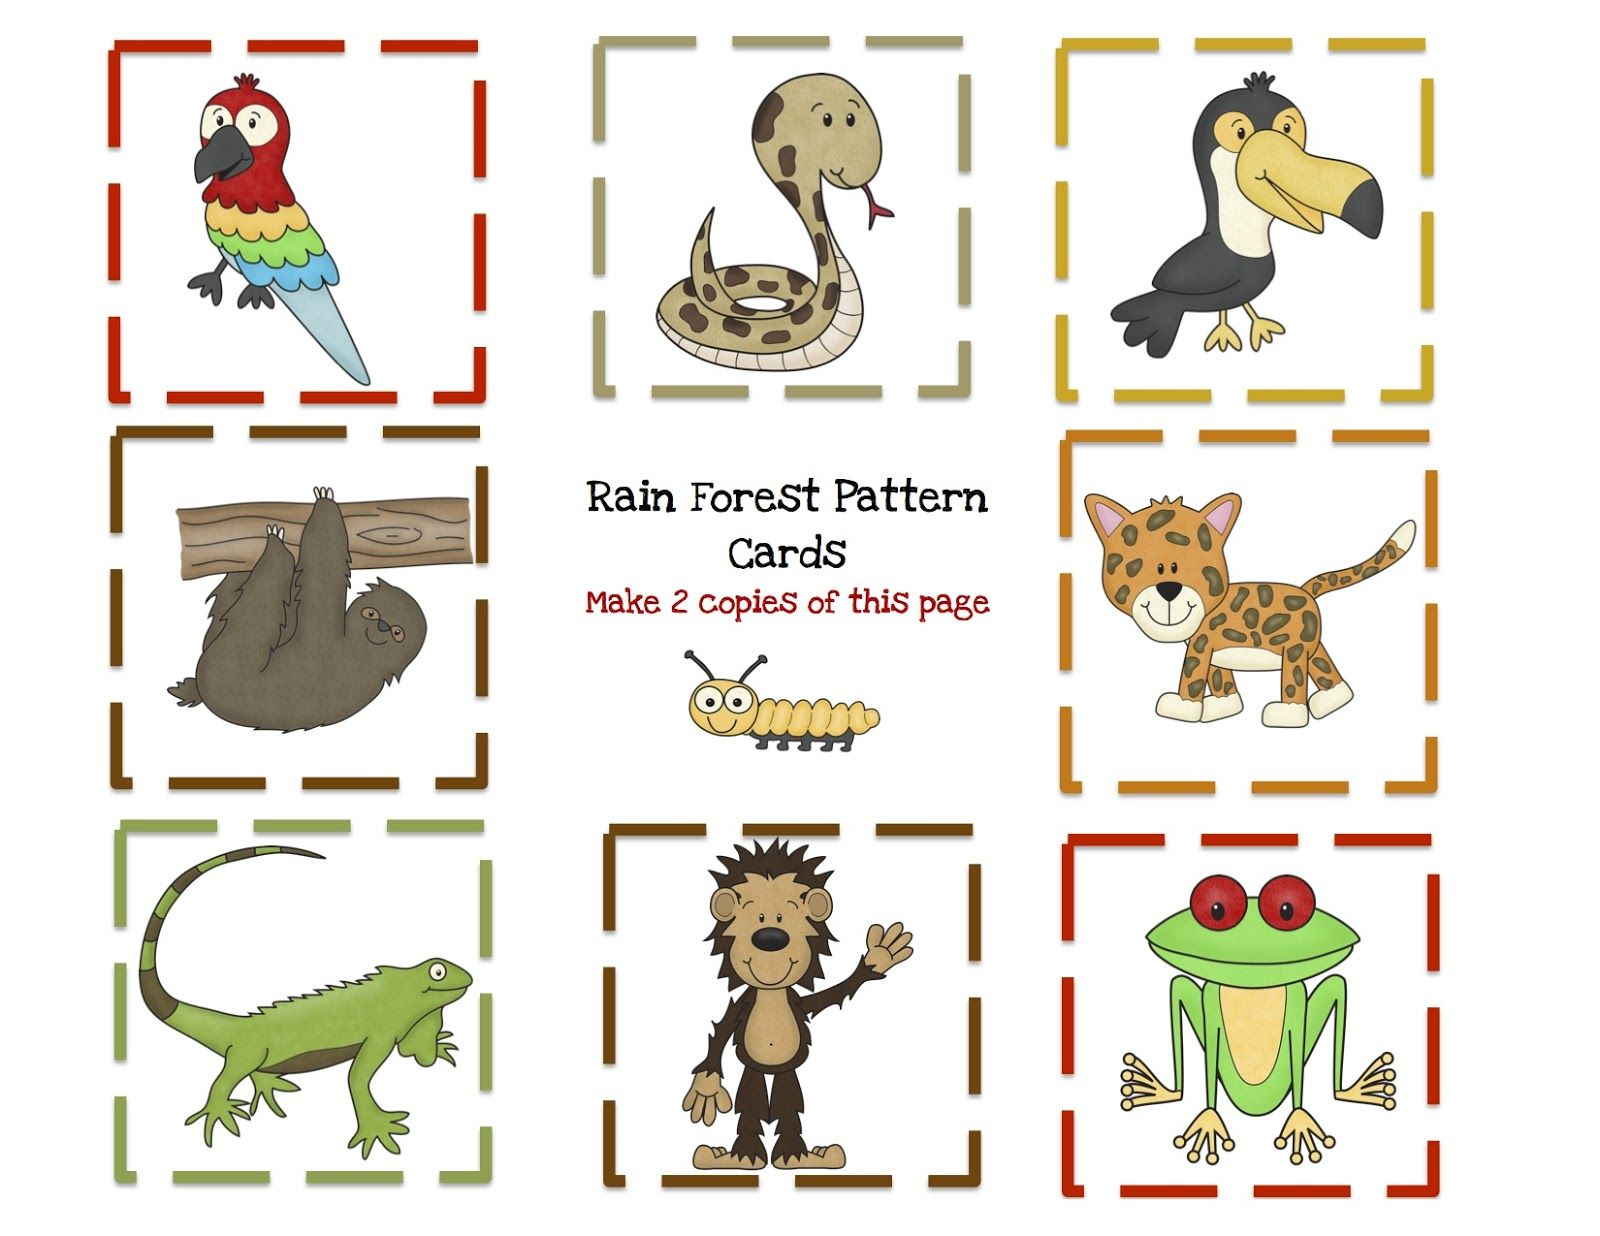 Preschool Printables Rain Forest Rainforest Animals Jungle